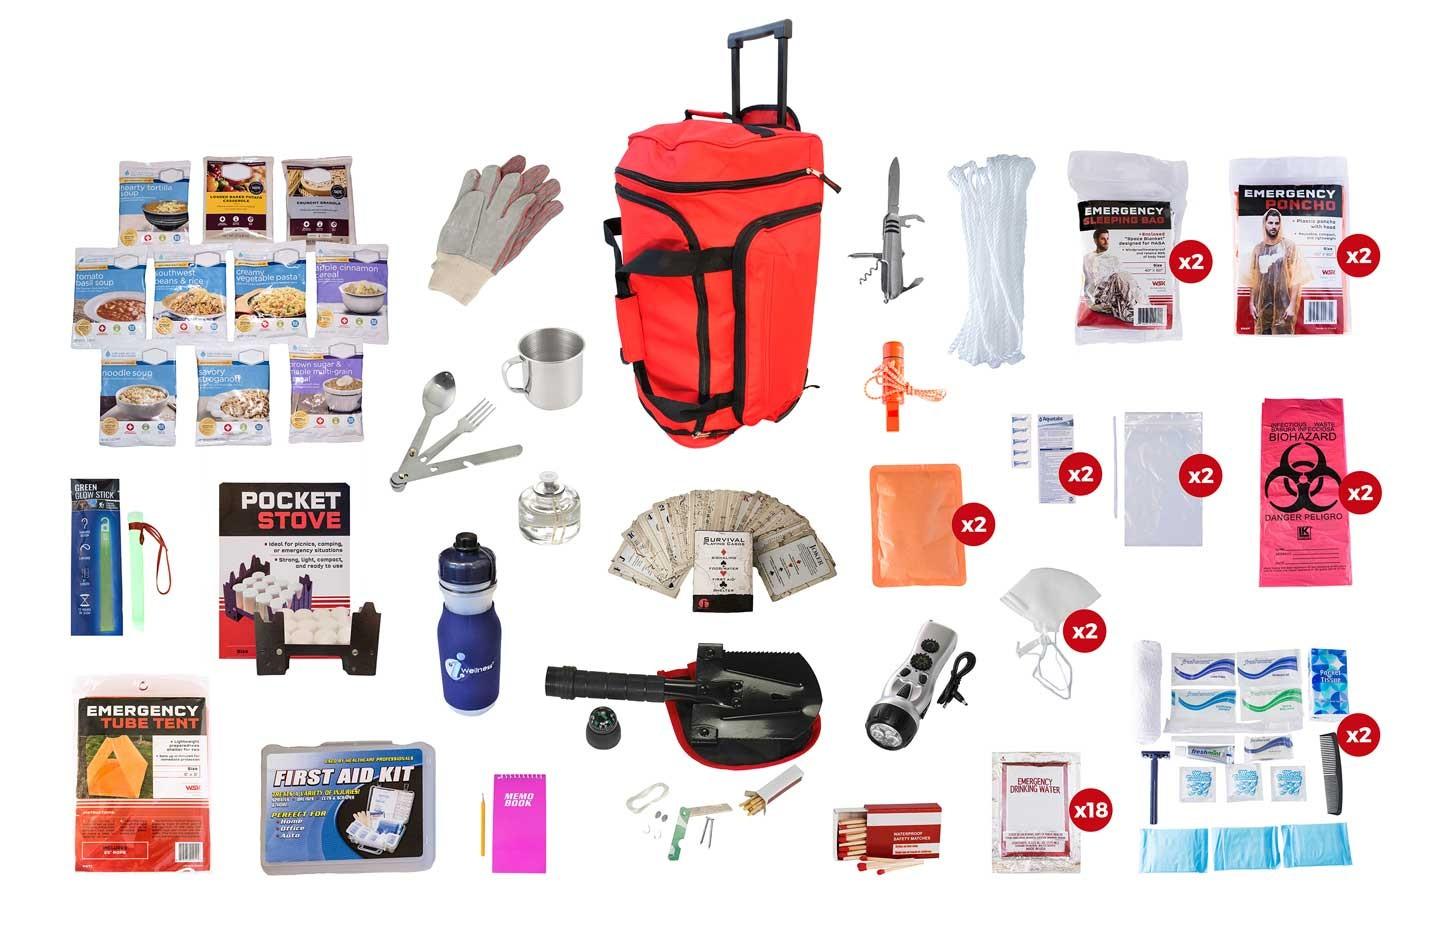 Deluxe Survival with Food Storage Survival Kit (14 day)-fsdk_web_1 (1).jpg